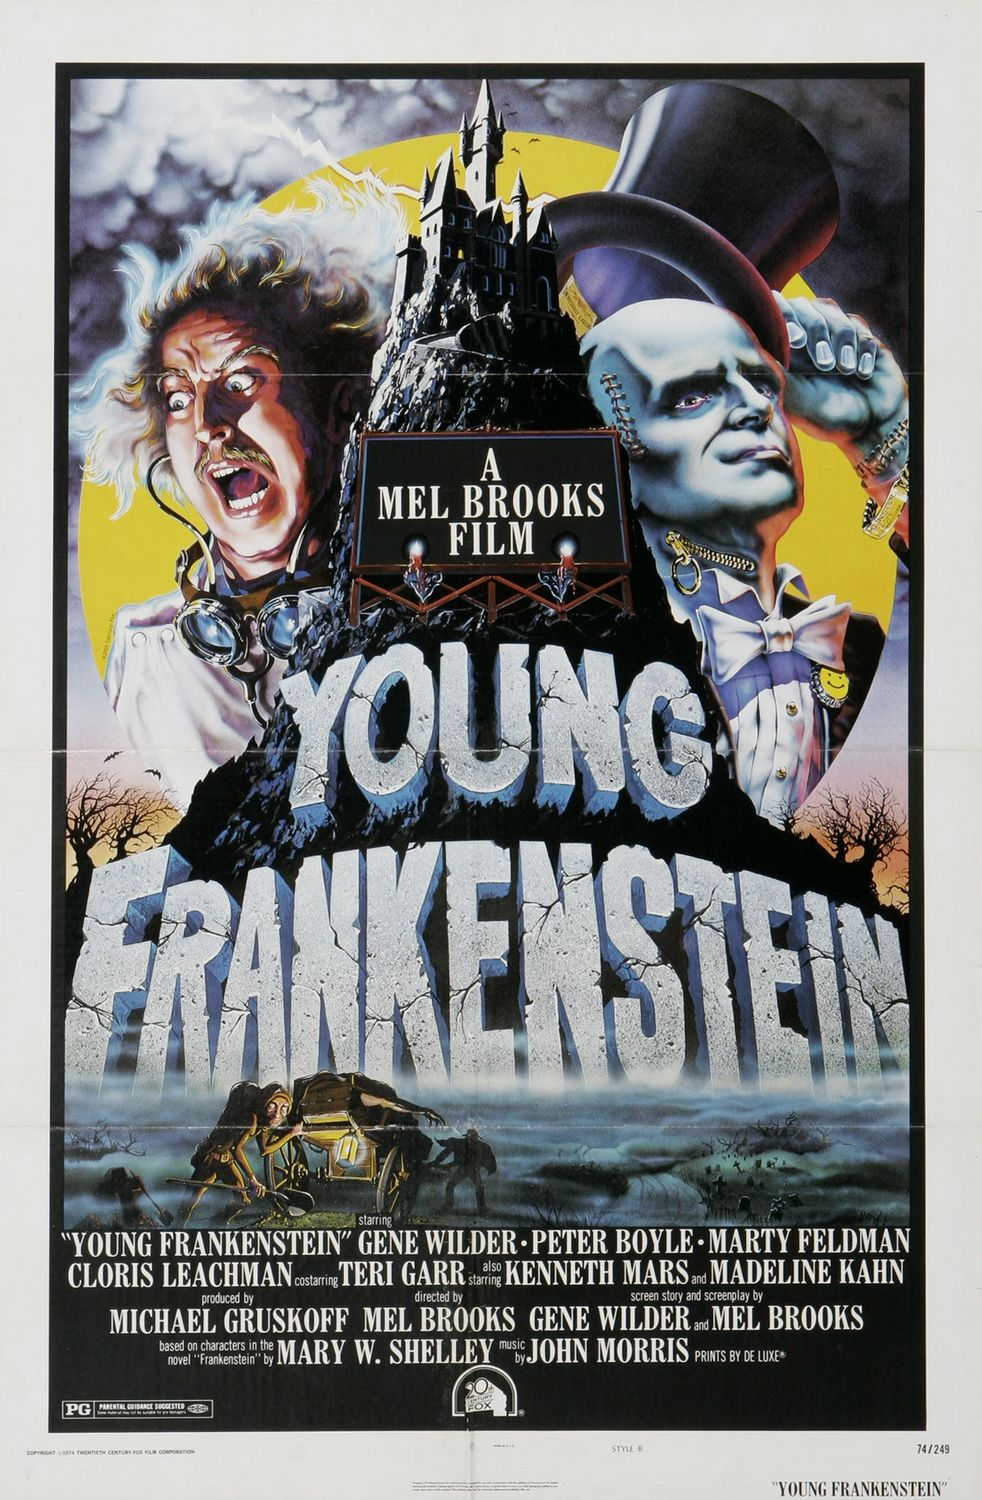 response to young frankenstein movie Young frankenstein 1974 pg comedy movie, new blu-ray gene wilder, boyle, feldman brand new blu-ray disc 45 out of 5 stars - young frankenstein 1974 pg comedy movie, new blu-ray gene wilder, boyle, feldman.